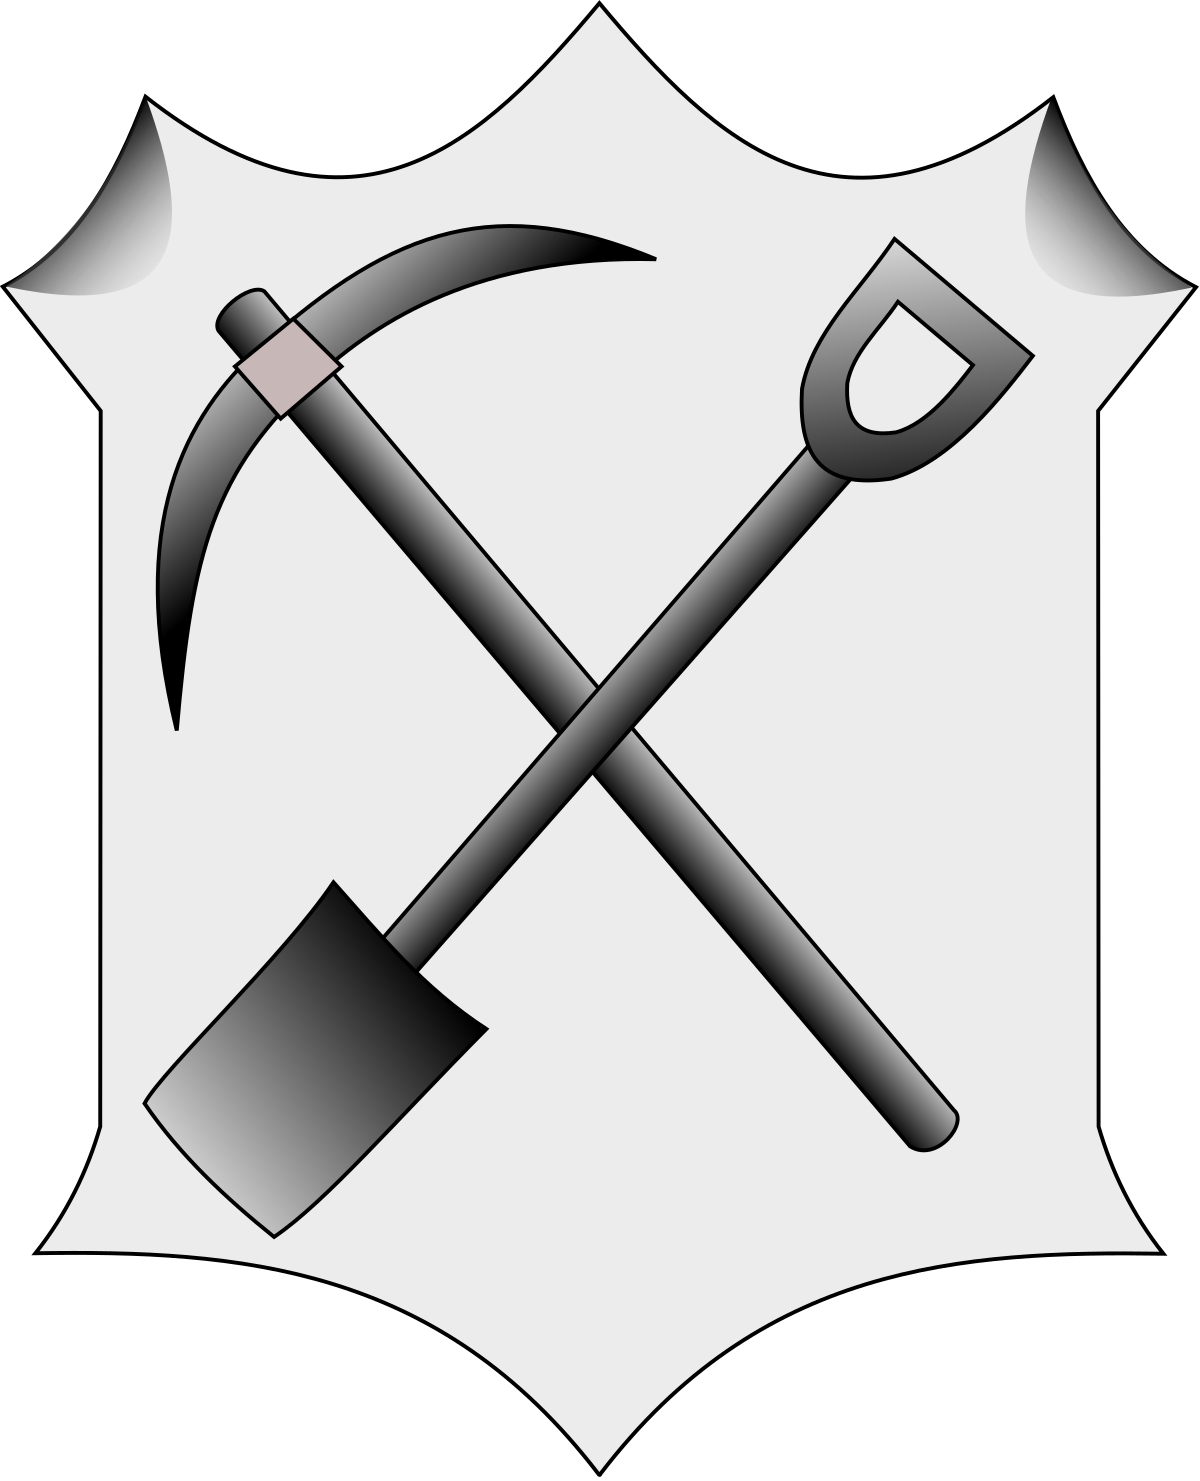 Pickaxe transparent printable. Highland land league wikipedia